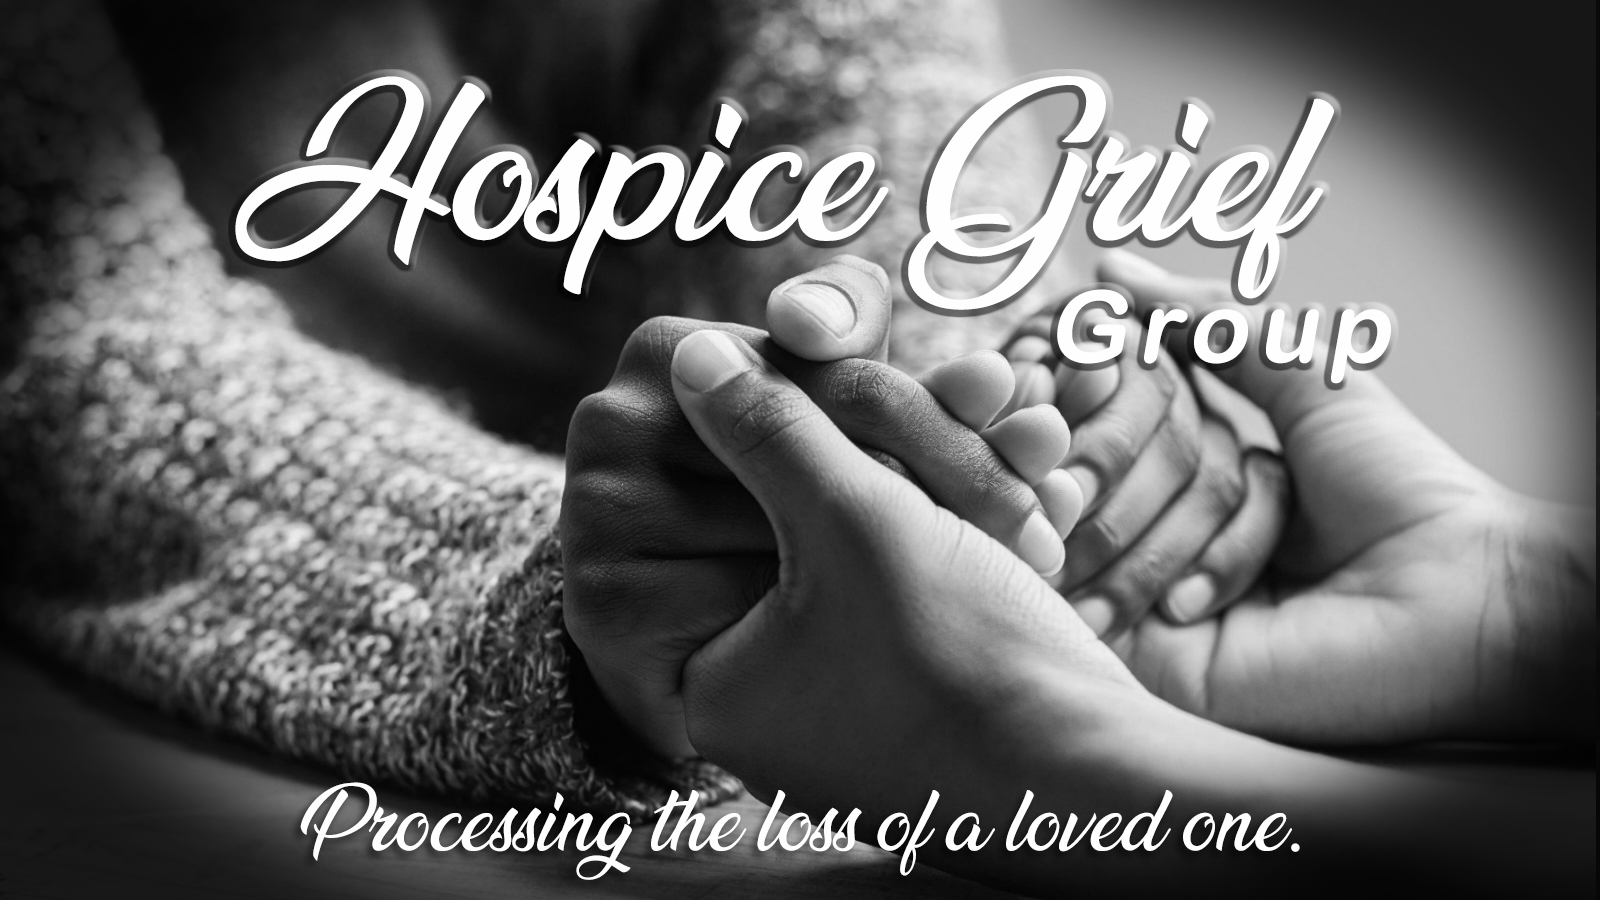 Hospice Grief Group.png